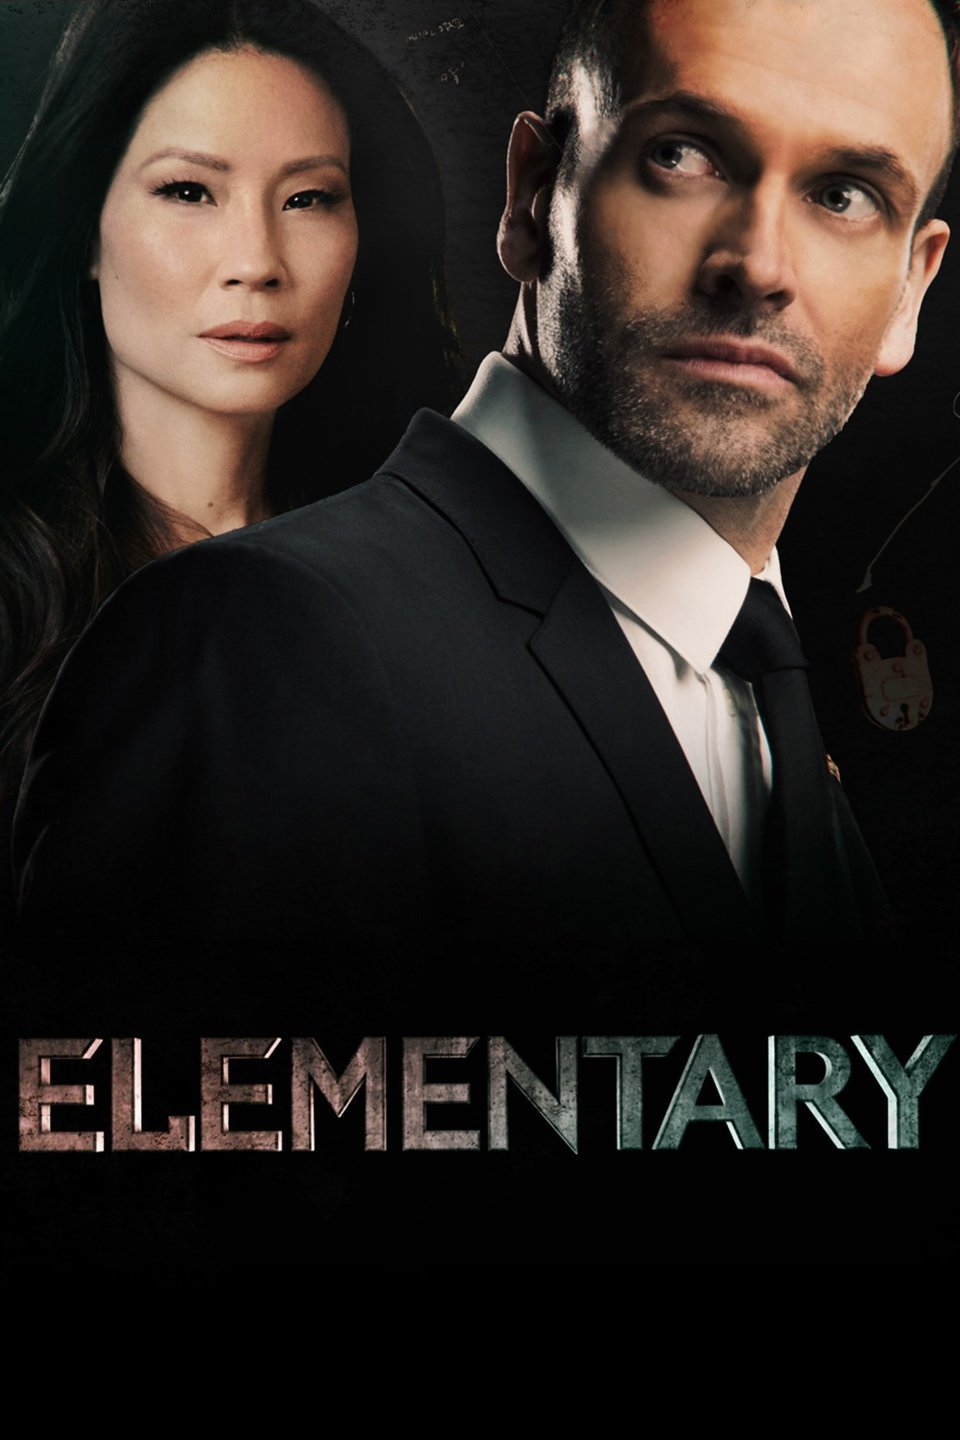 Elementary Season 6 Episode 7 Download HDTV 480p 720p